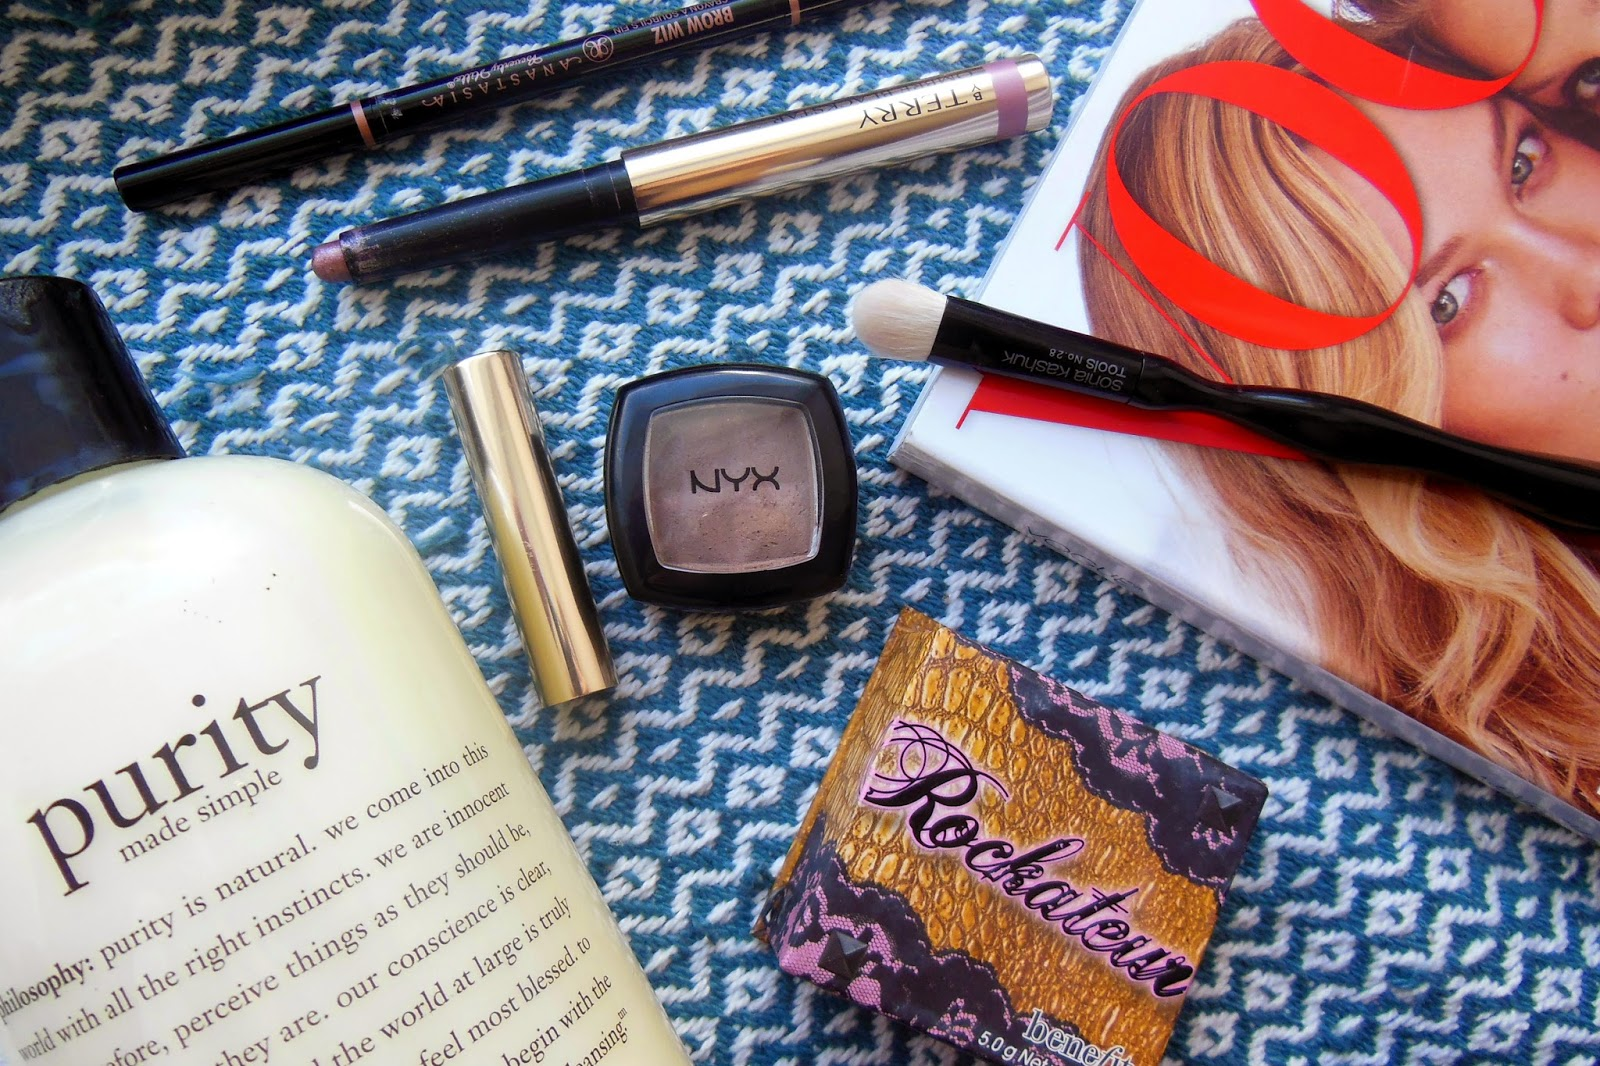 Canadian Beauty Blogger Product Reviews Swatches Sephora Smoky Eye Urban Decay Naked Palette Benefit By Terry Anastasia Brow Whiz